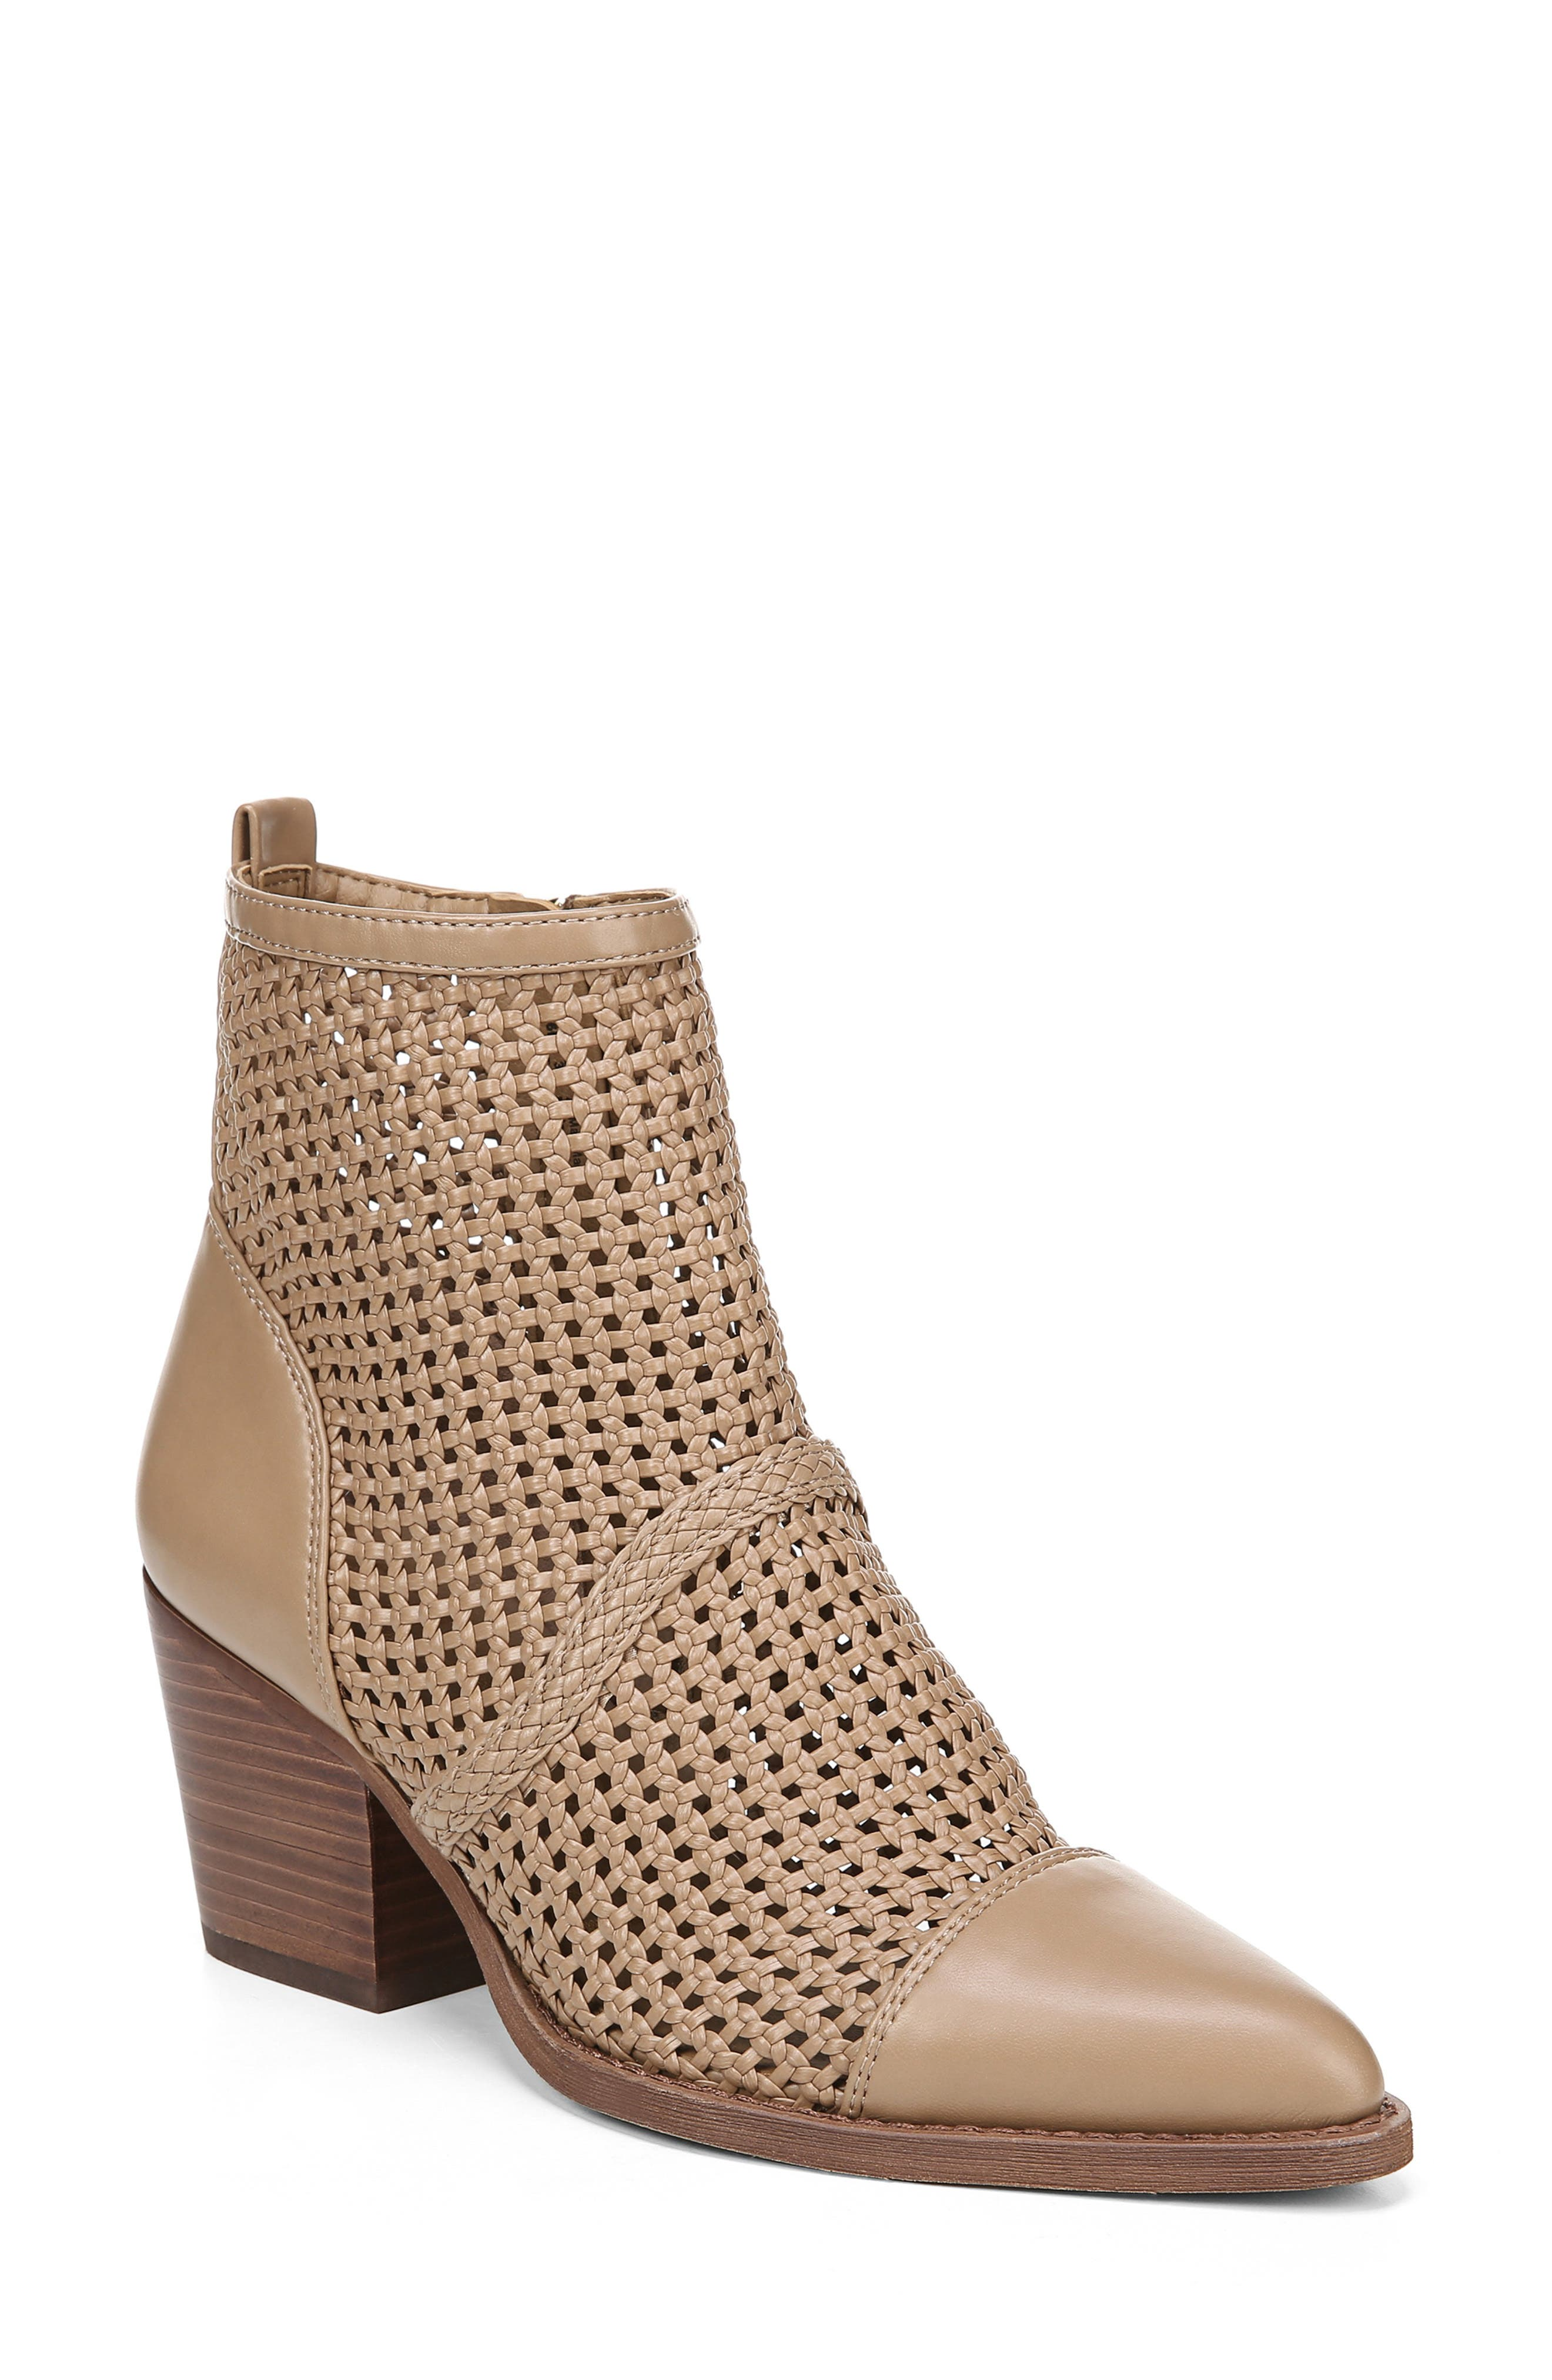 Sam Edelman Elita Woven Cap Toe Bootie, Brown